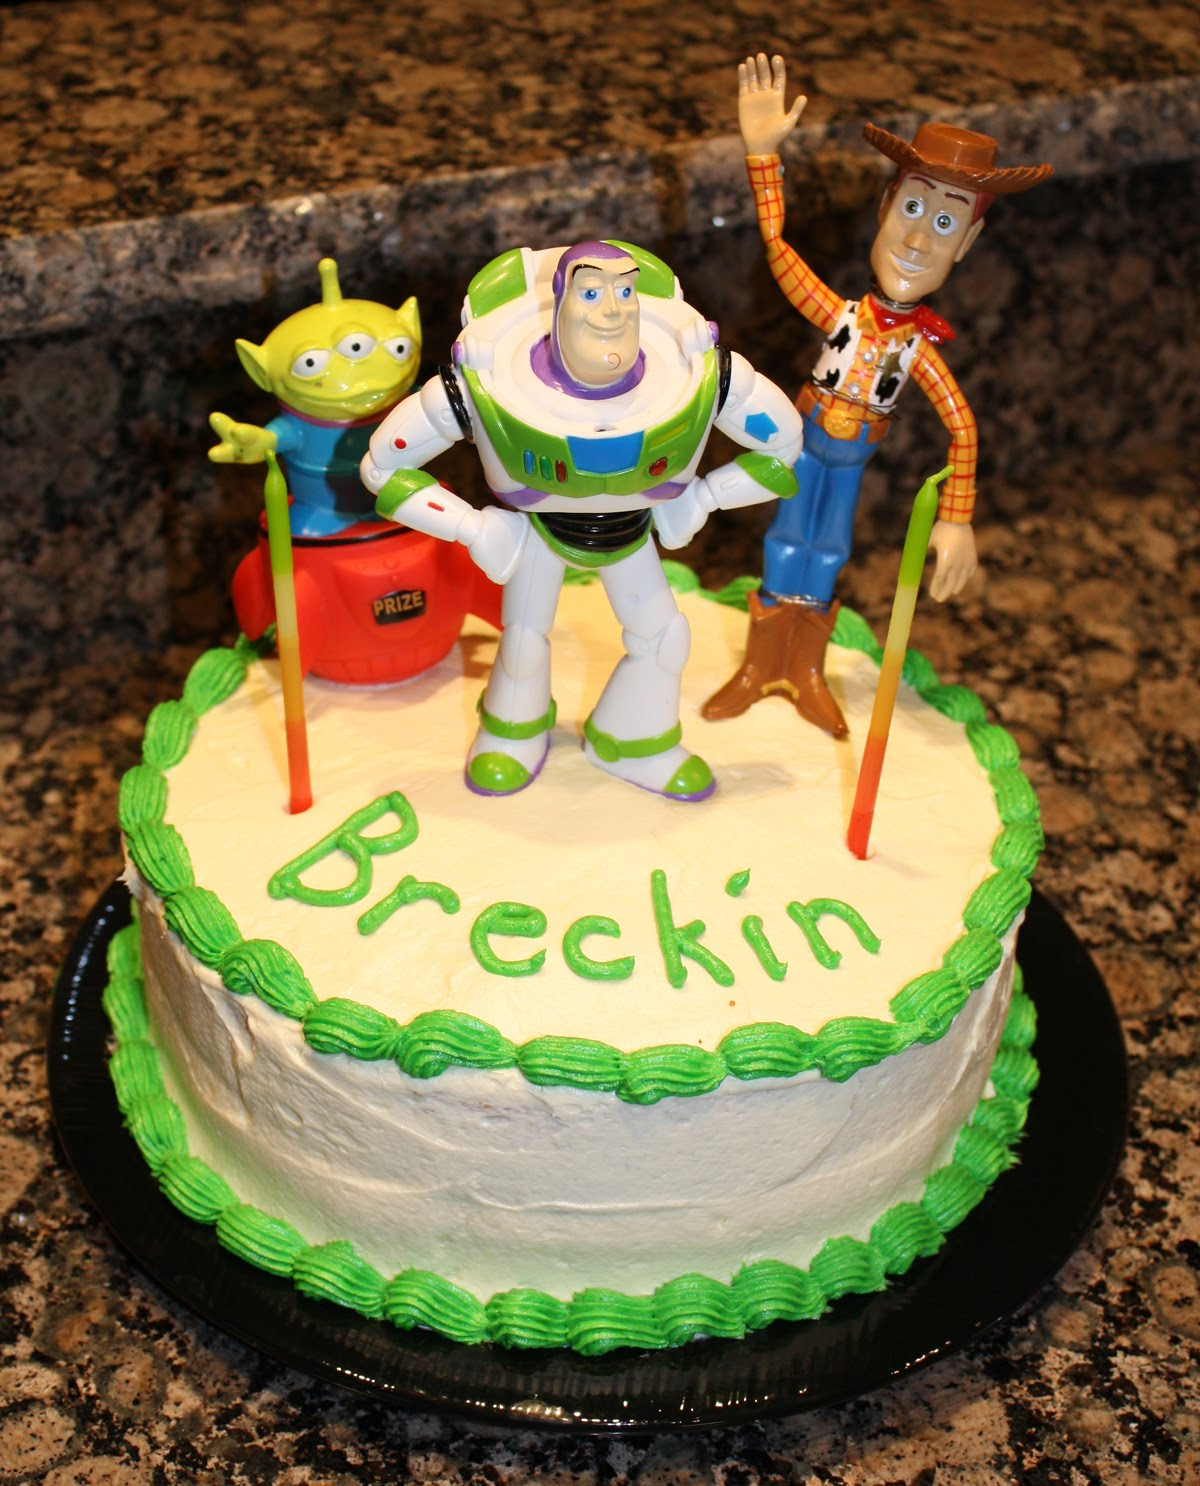 Best ideas about Toy Birthday Cake . Save or Pin Living and Dyeing Under the Big Sky Toy Story Birthday Cake Now.